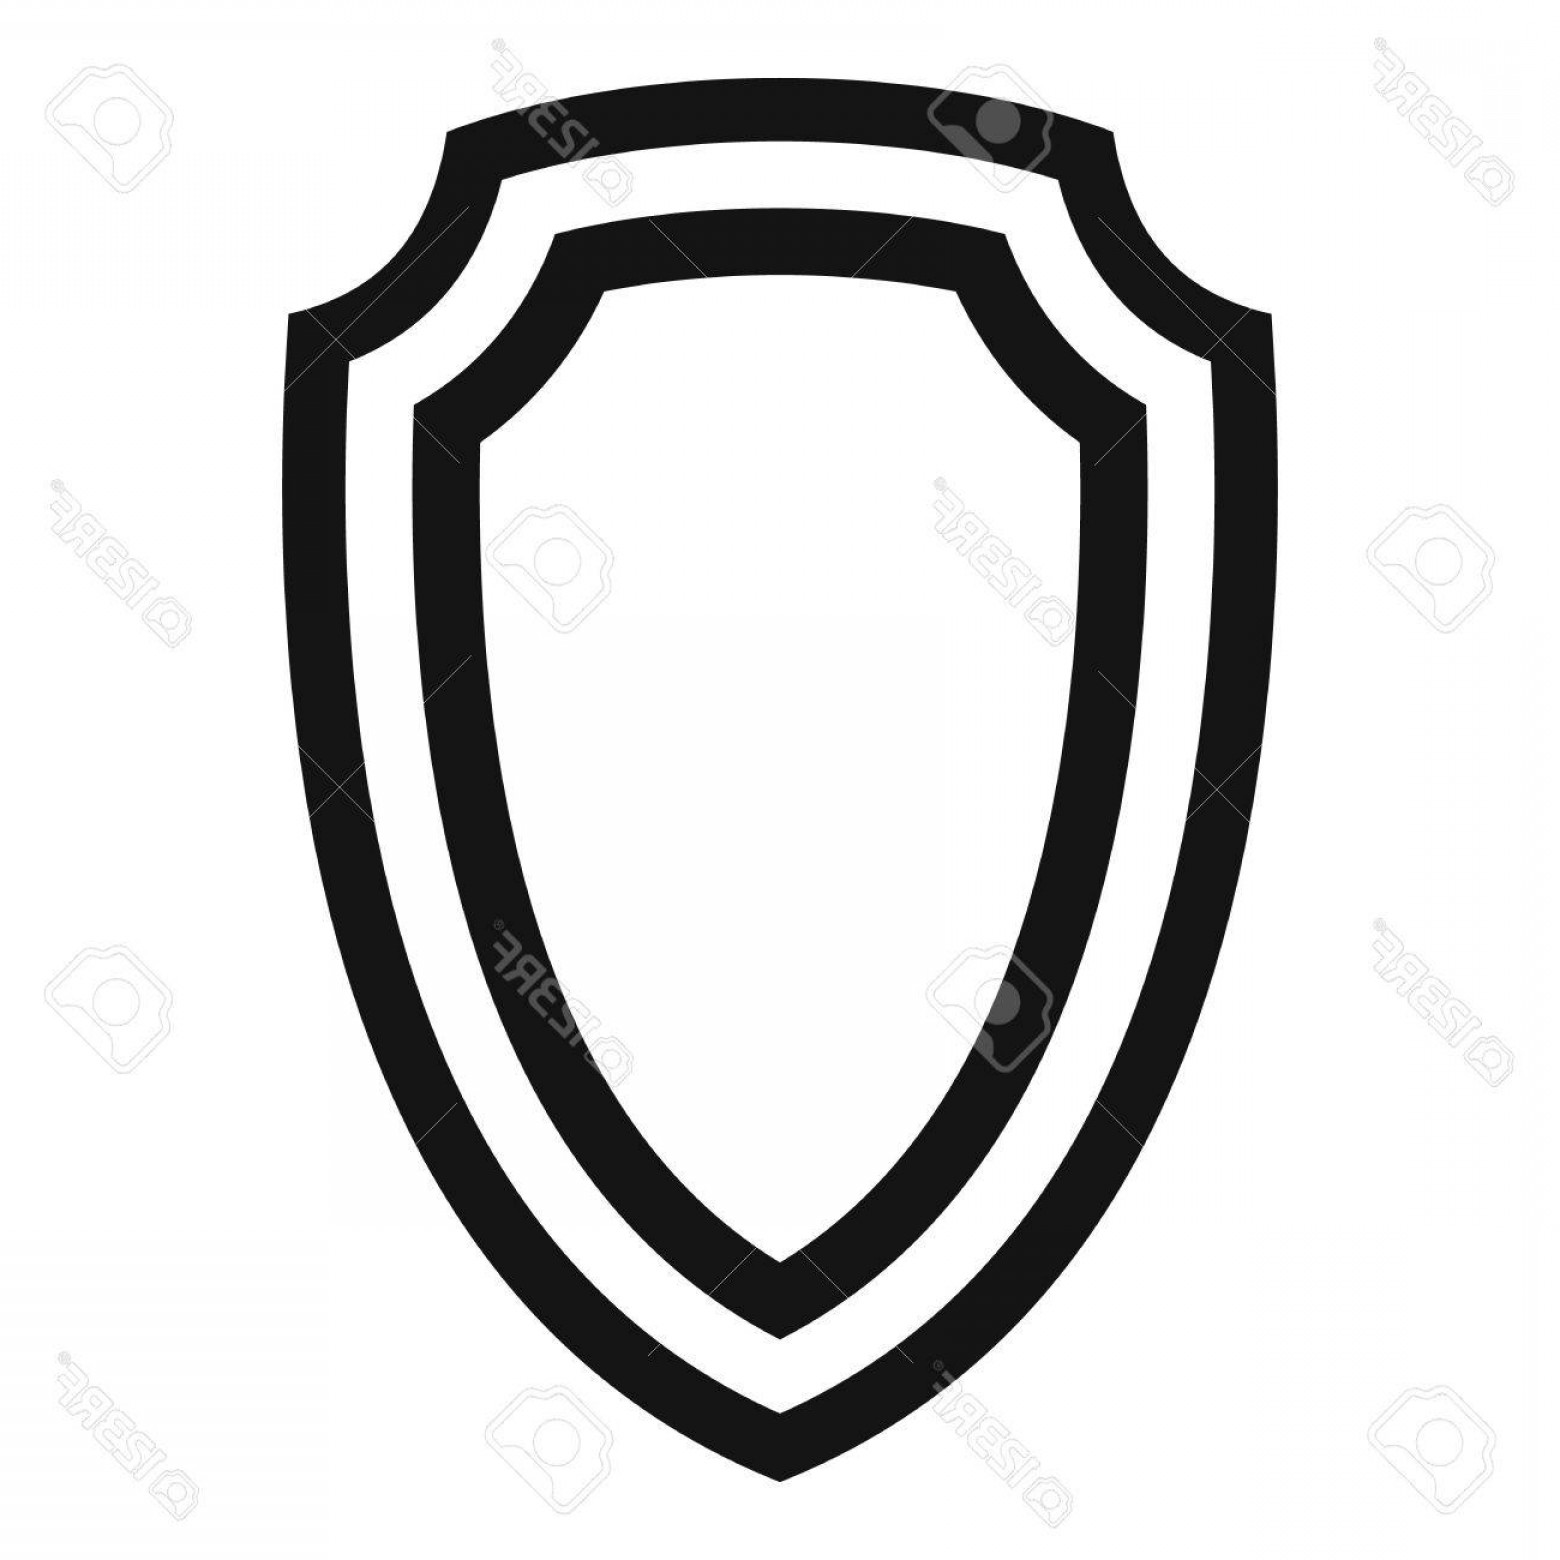 White Shield Vector: Photostock Vector Army Shield Icon Simple Illustration Of Army Shield Vector Icon For Web